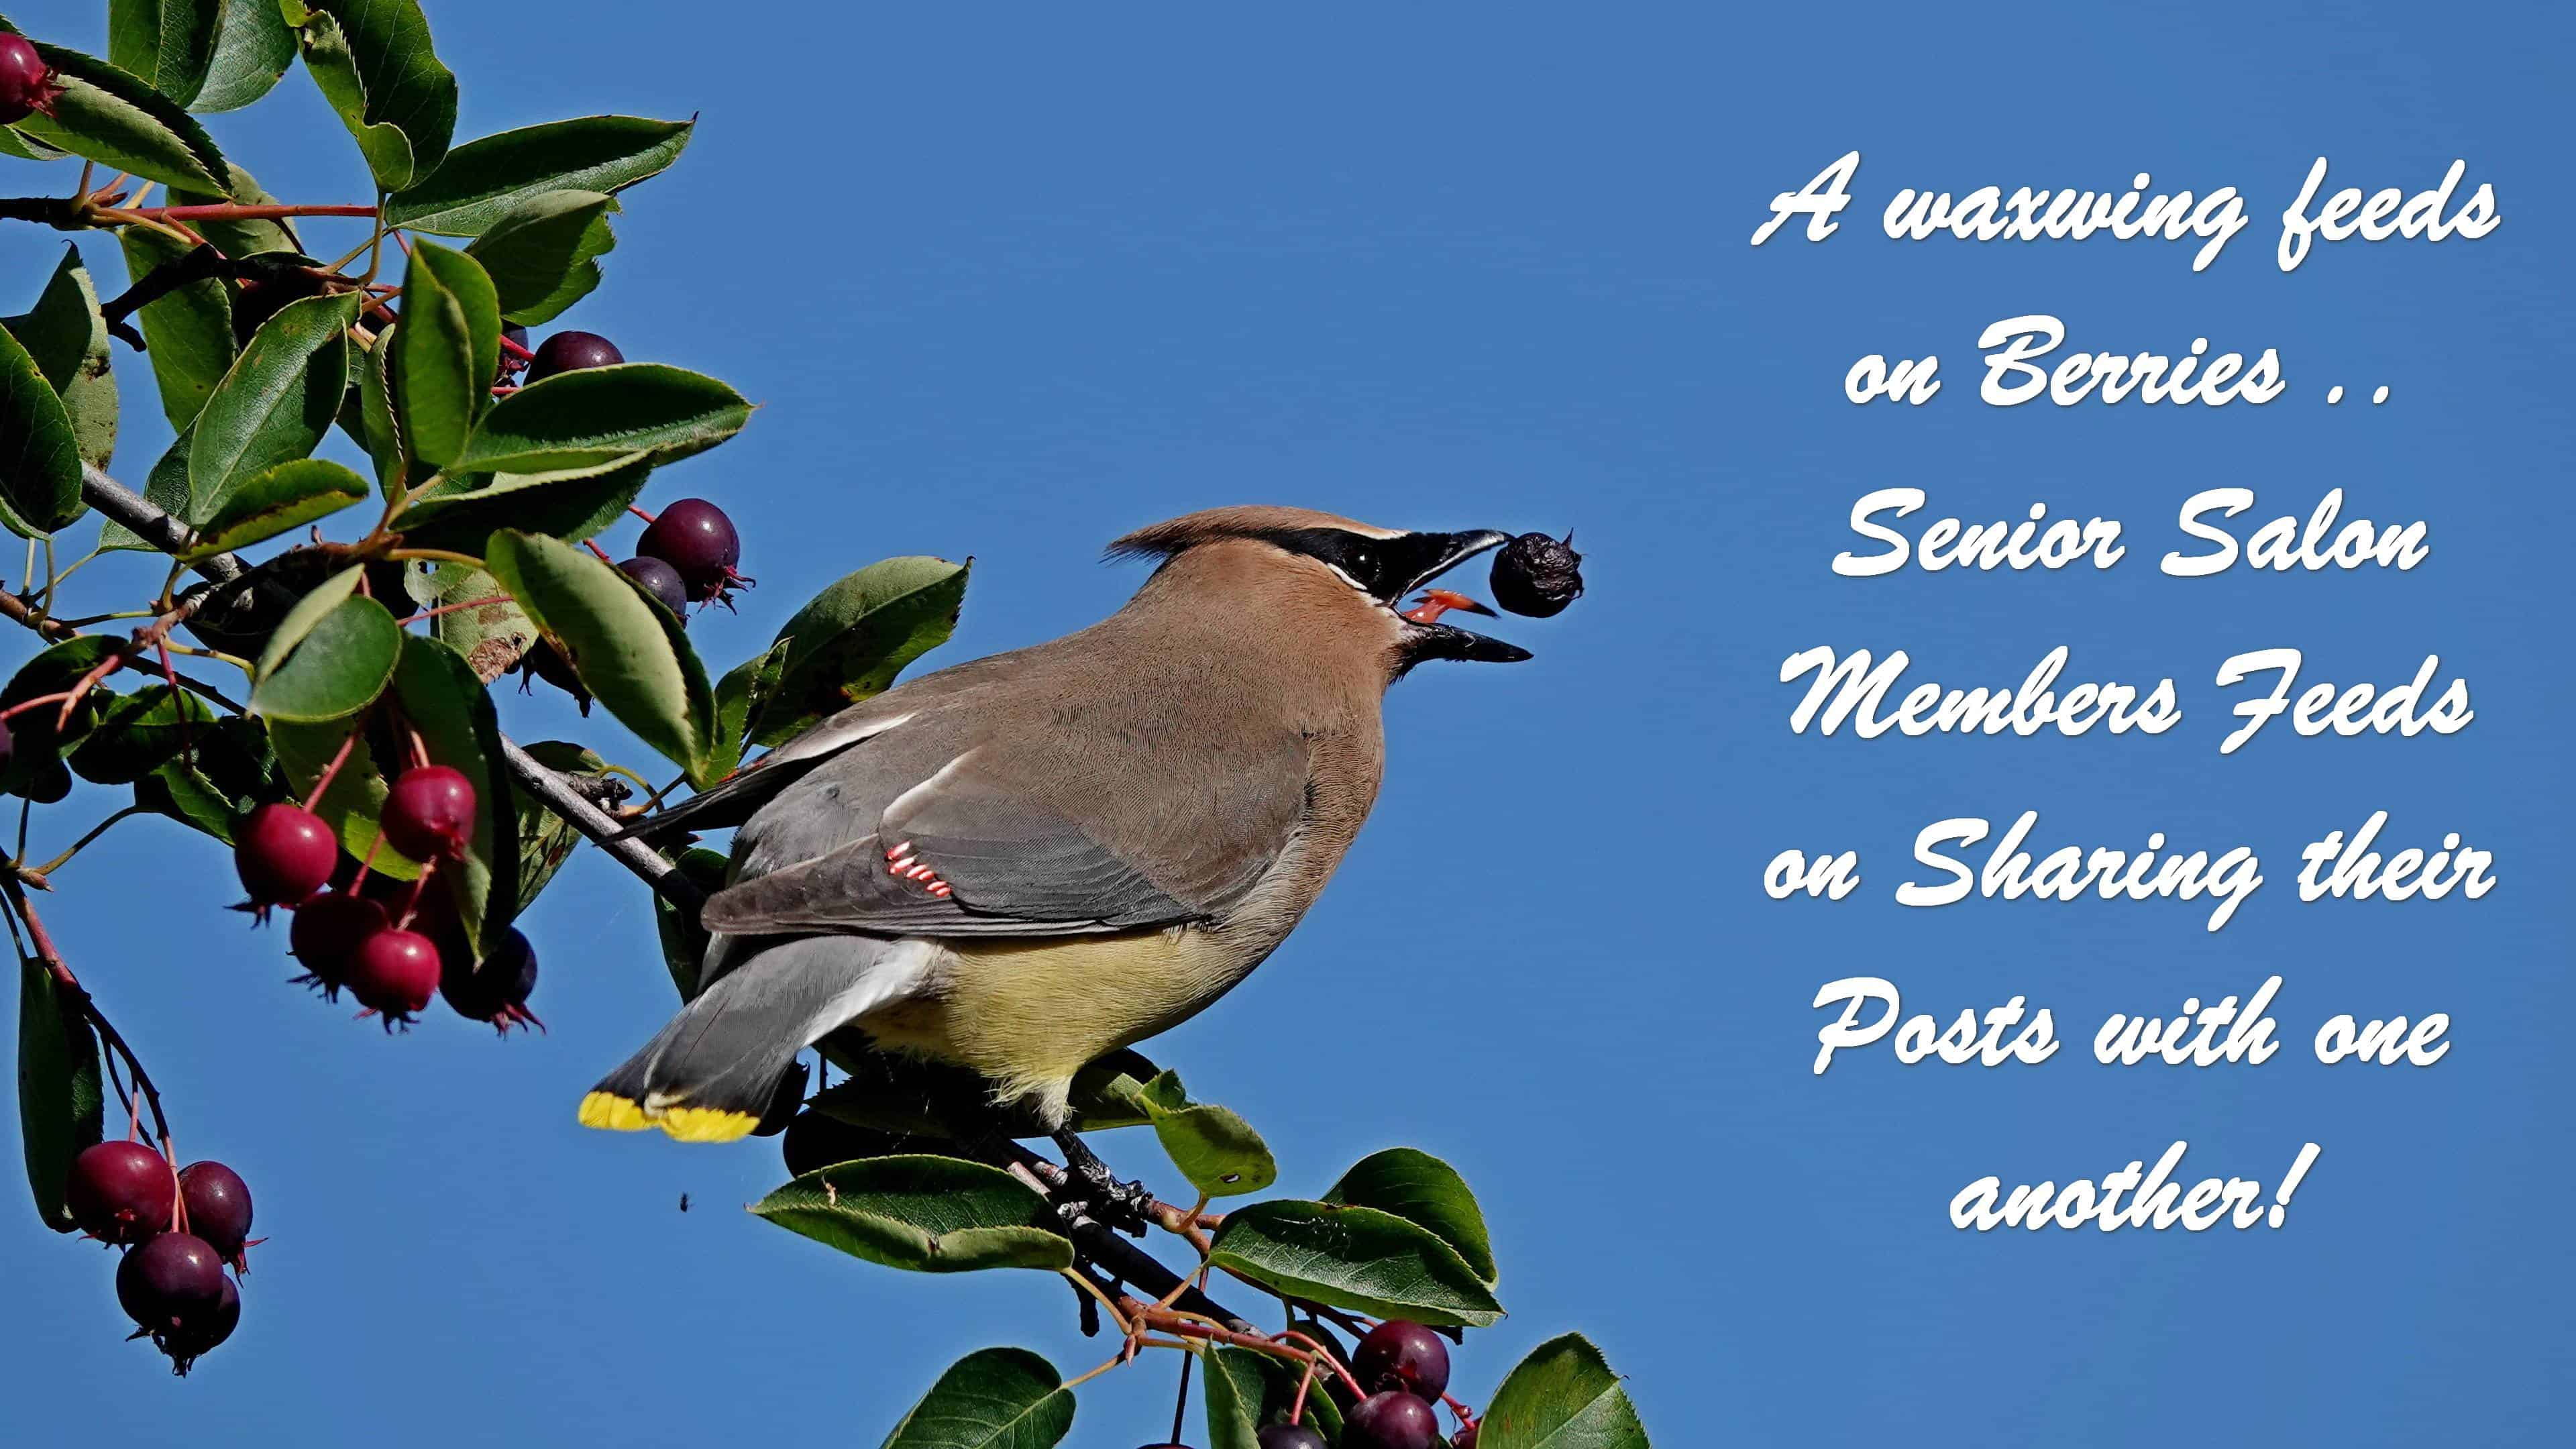 #19 SENIOR SALON 2018 A waxwing feeds on Berries .. Senior Salon Members Feeds on Sharing their Posts with one another!